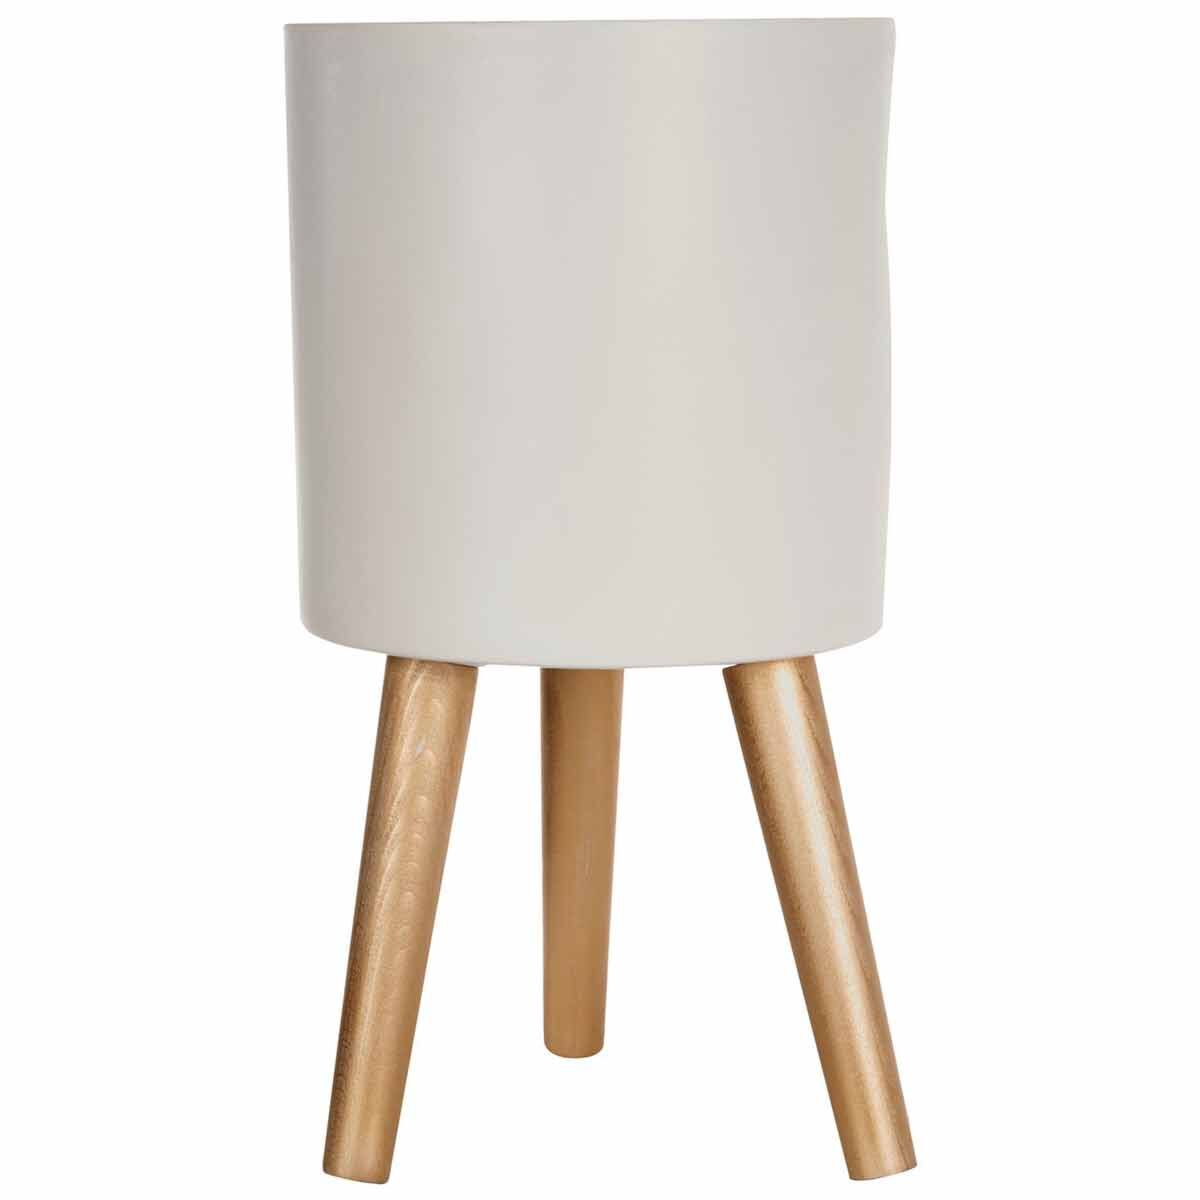 Interiors by PH Small White and Gold Planter